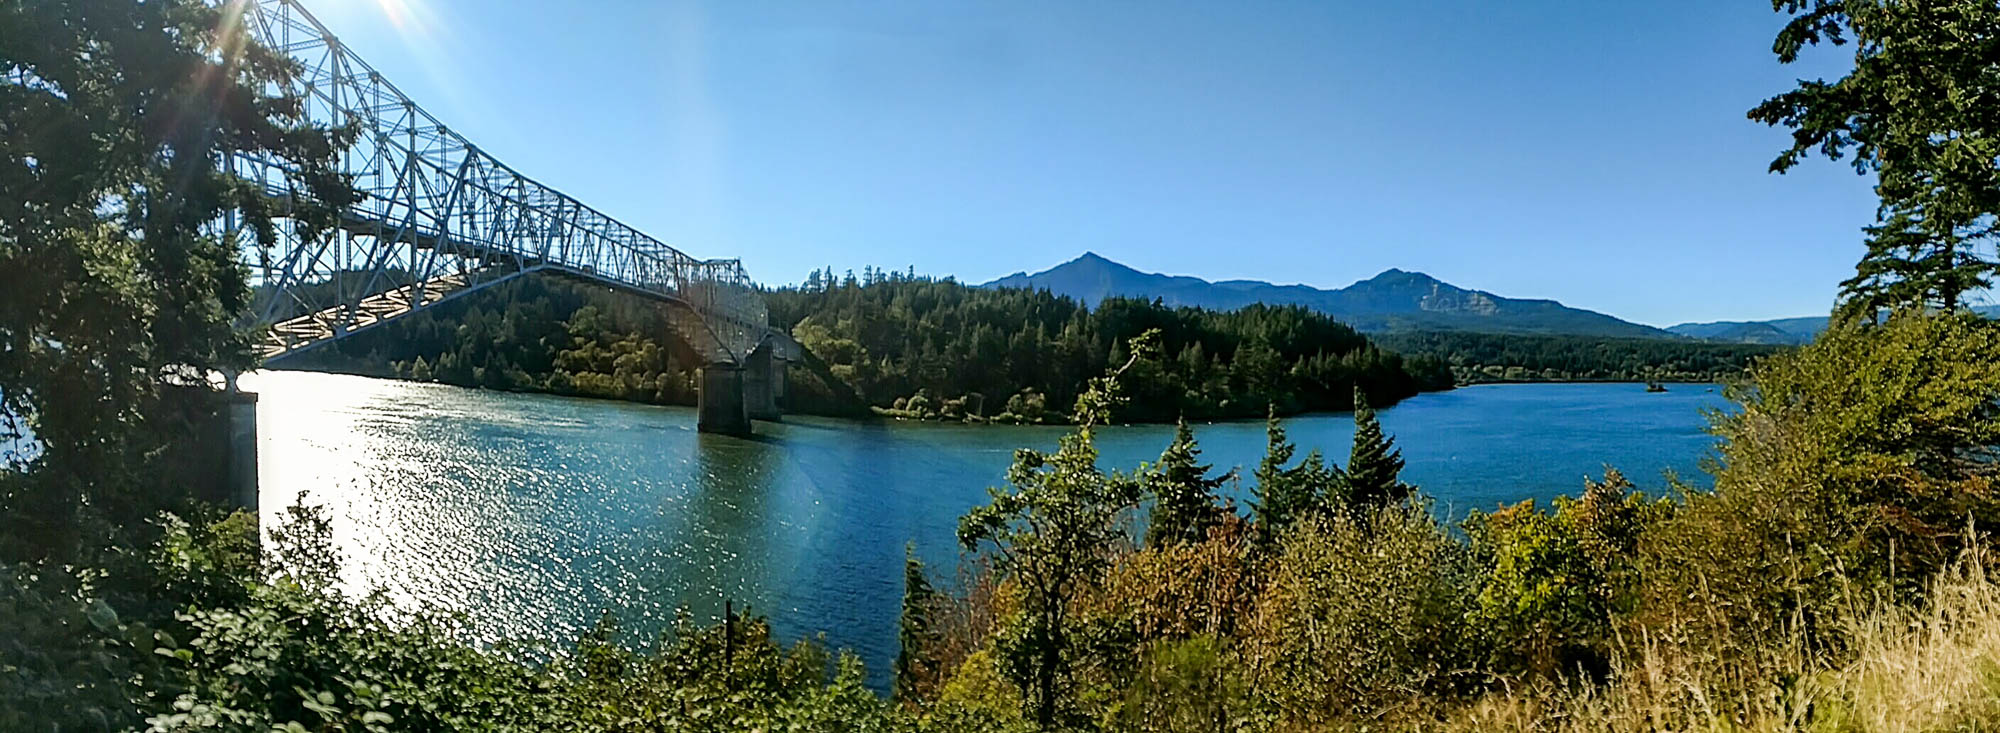 Cascade Locks Bridge of the Gods Oregon